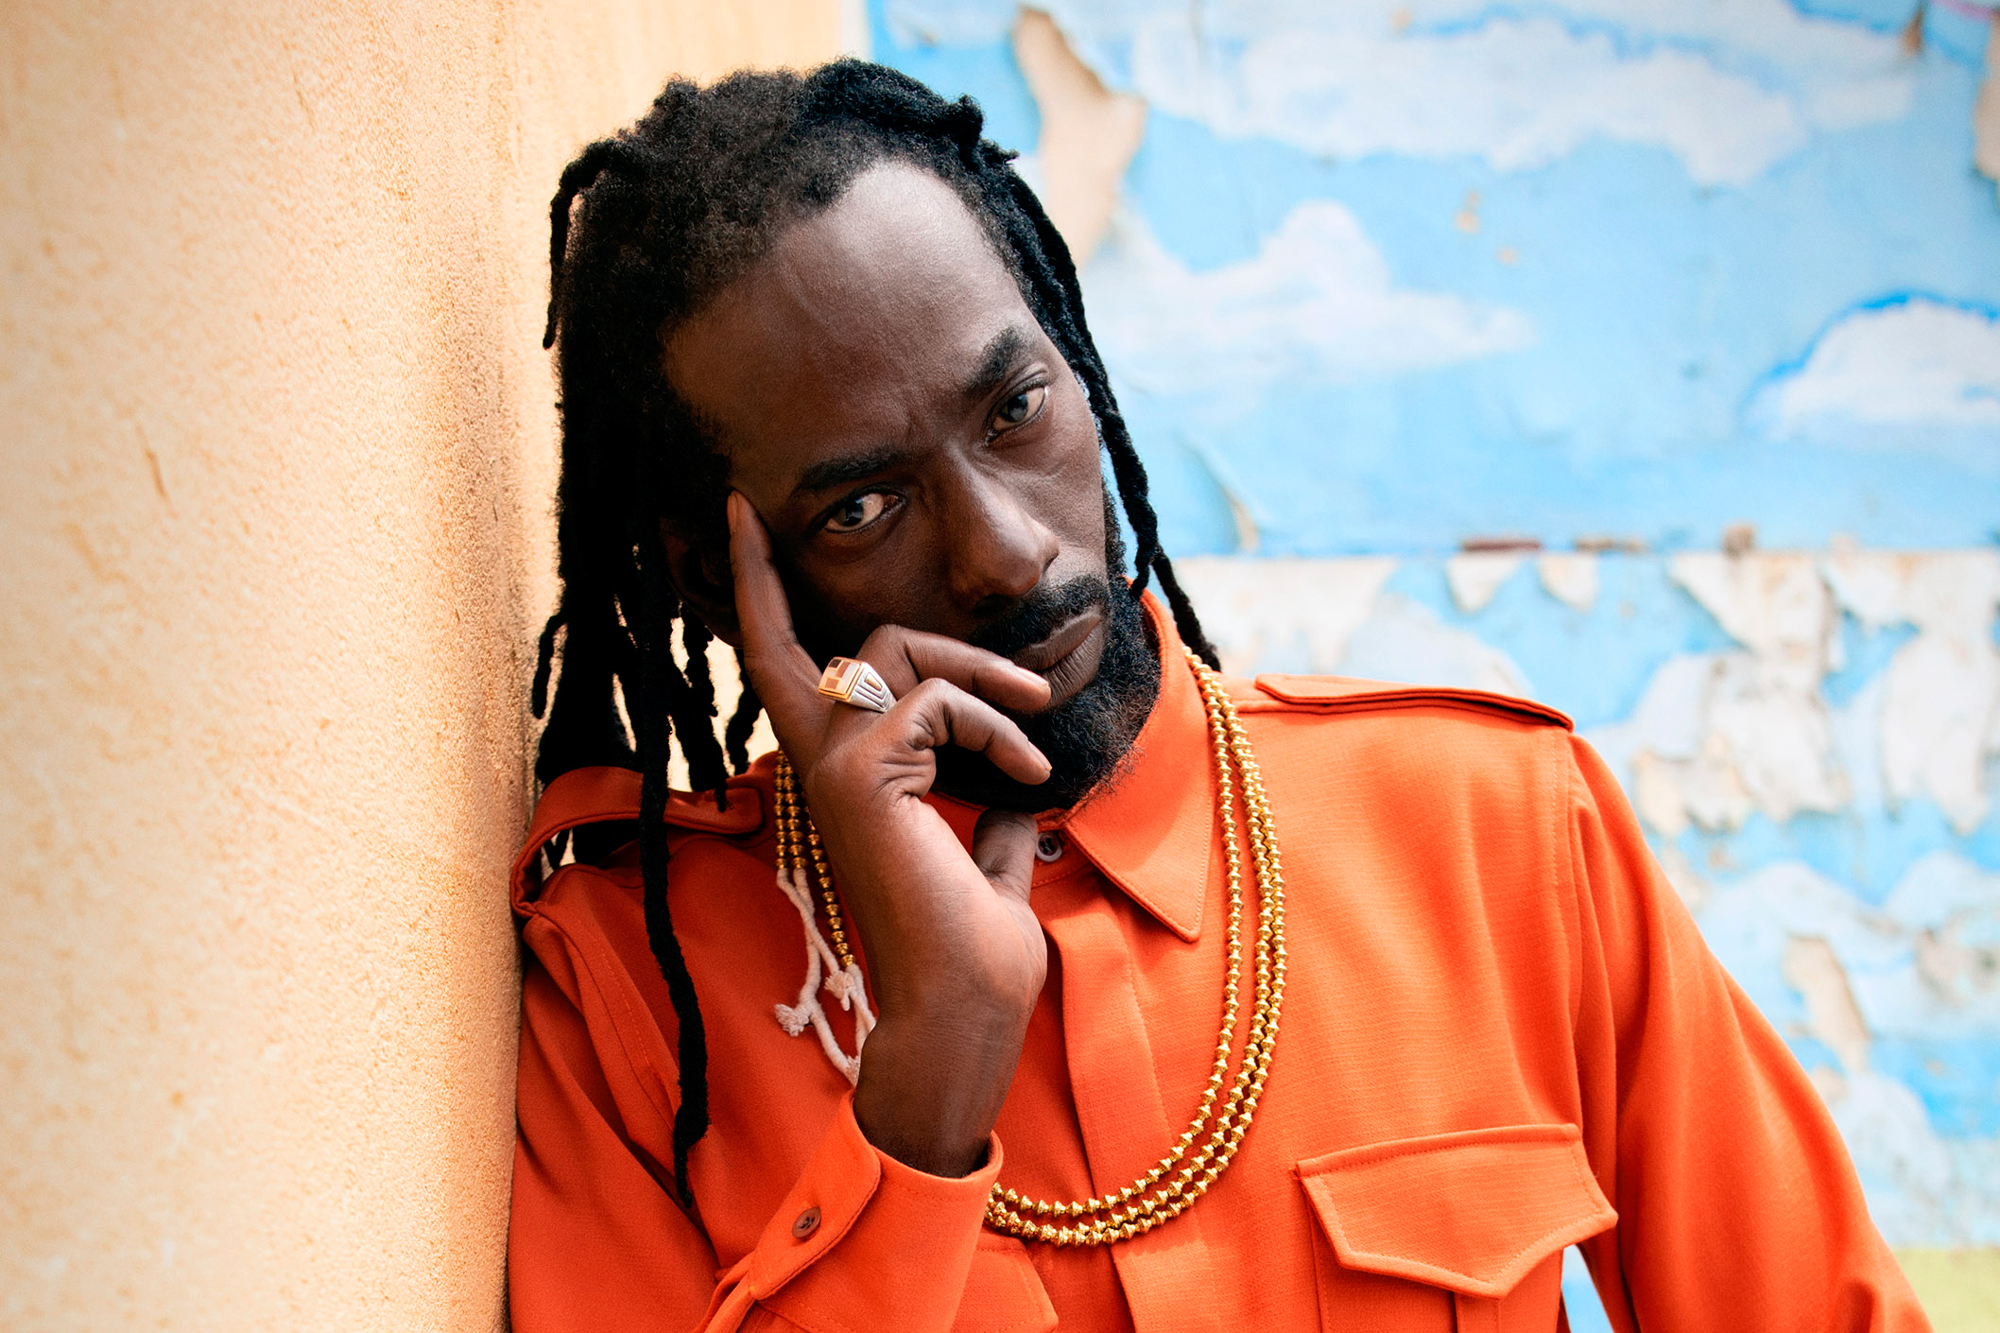 Buju Banton Signs With Roc Nation, Shares 'Steppa' Video - Rolling Stone